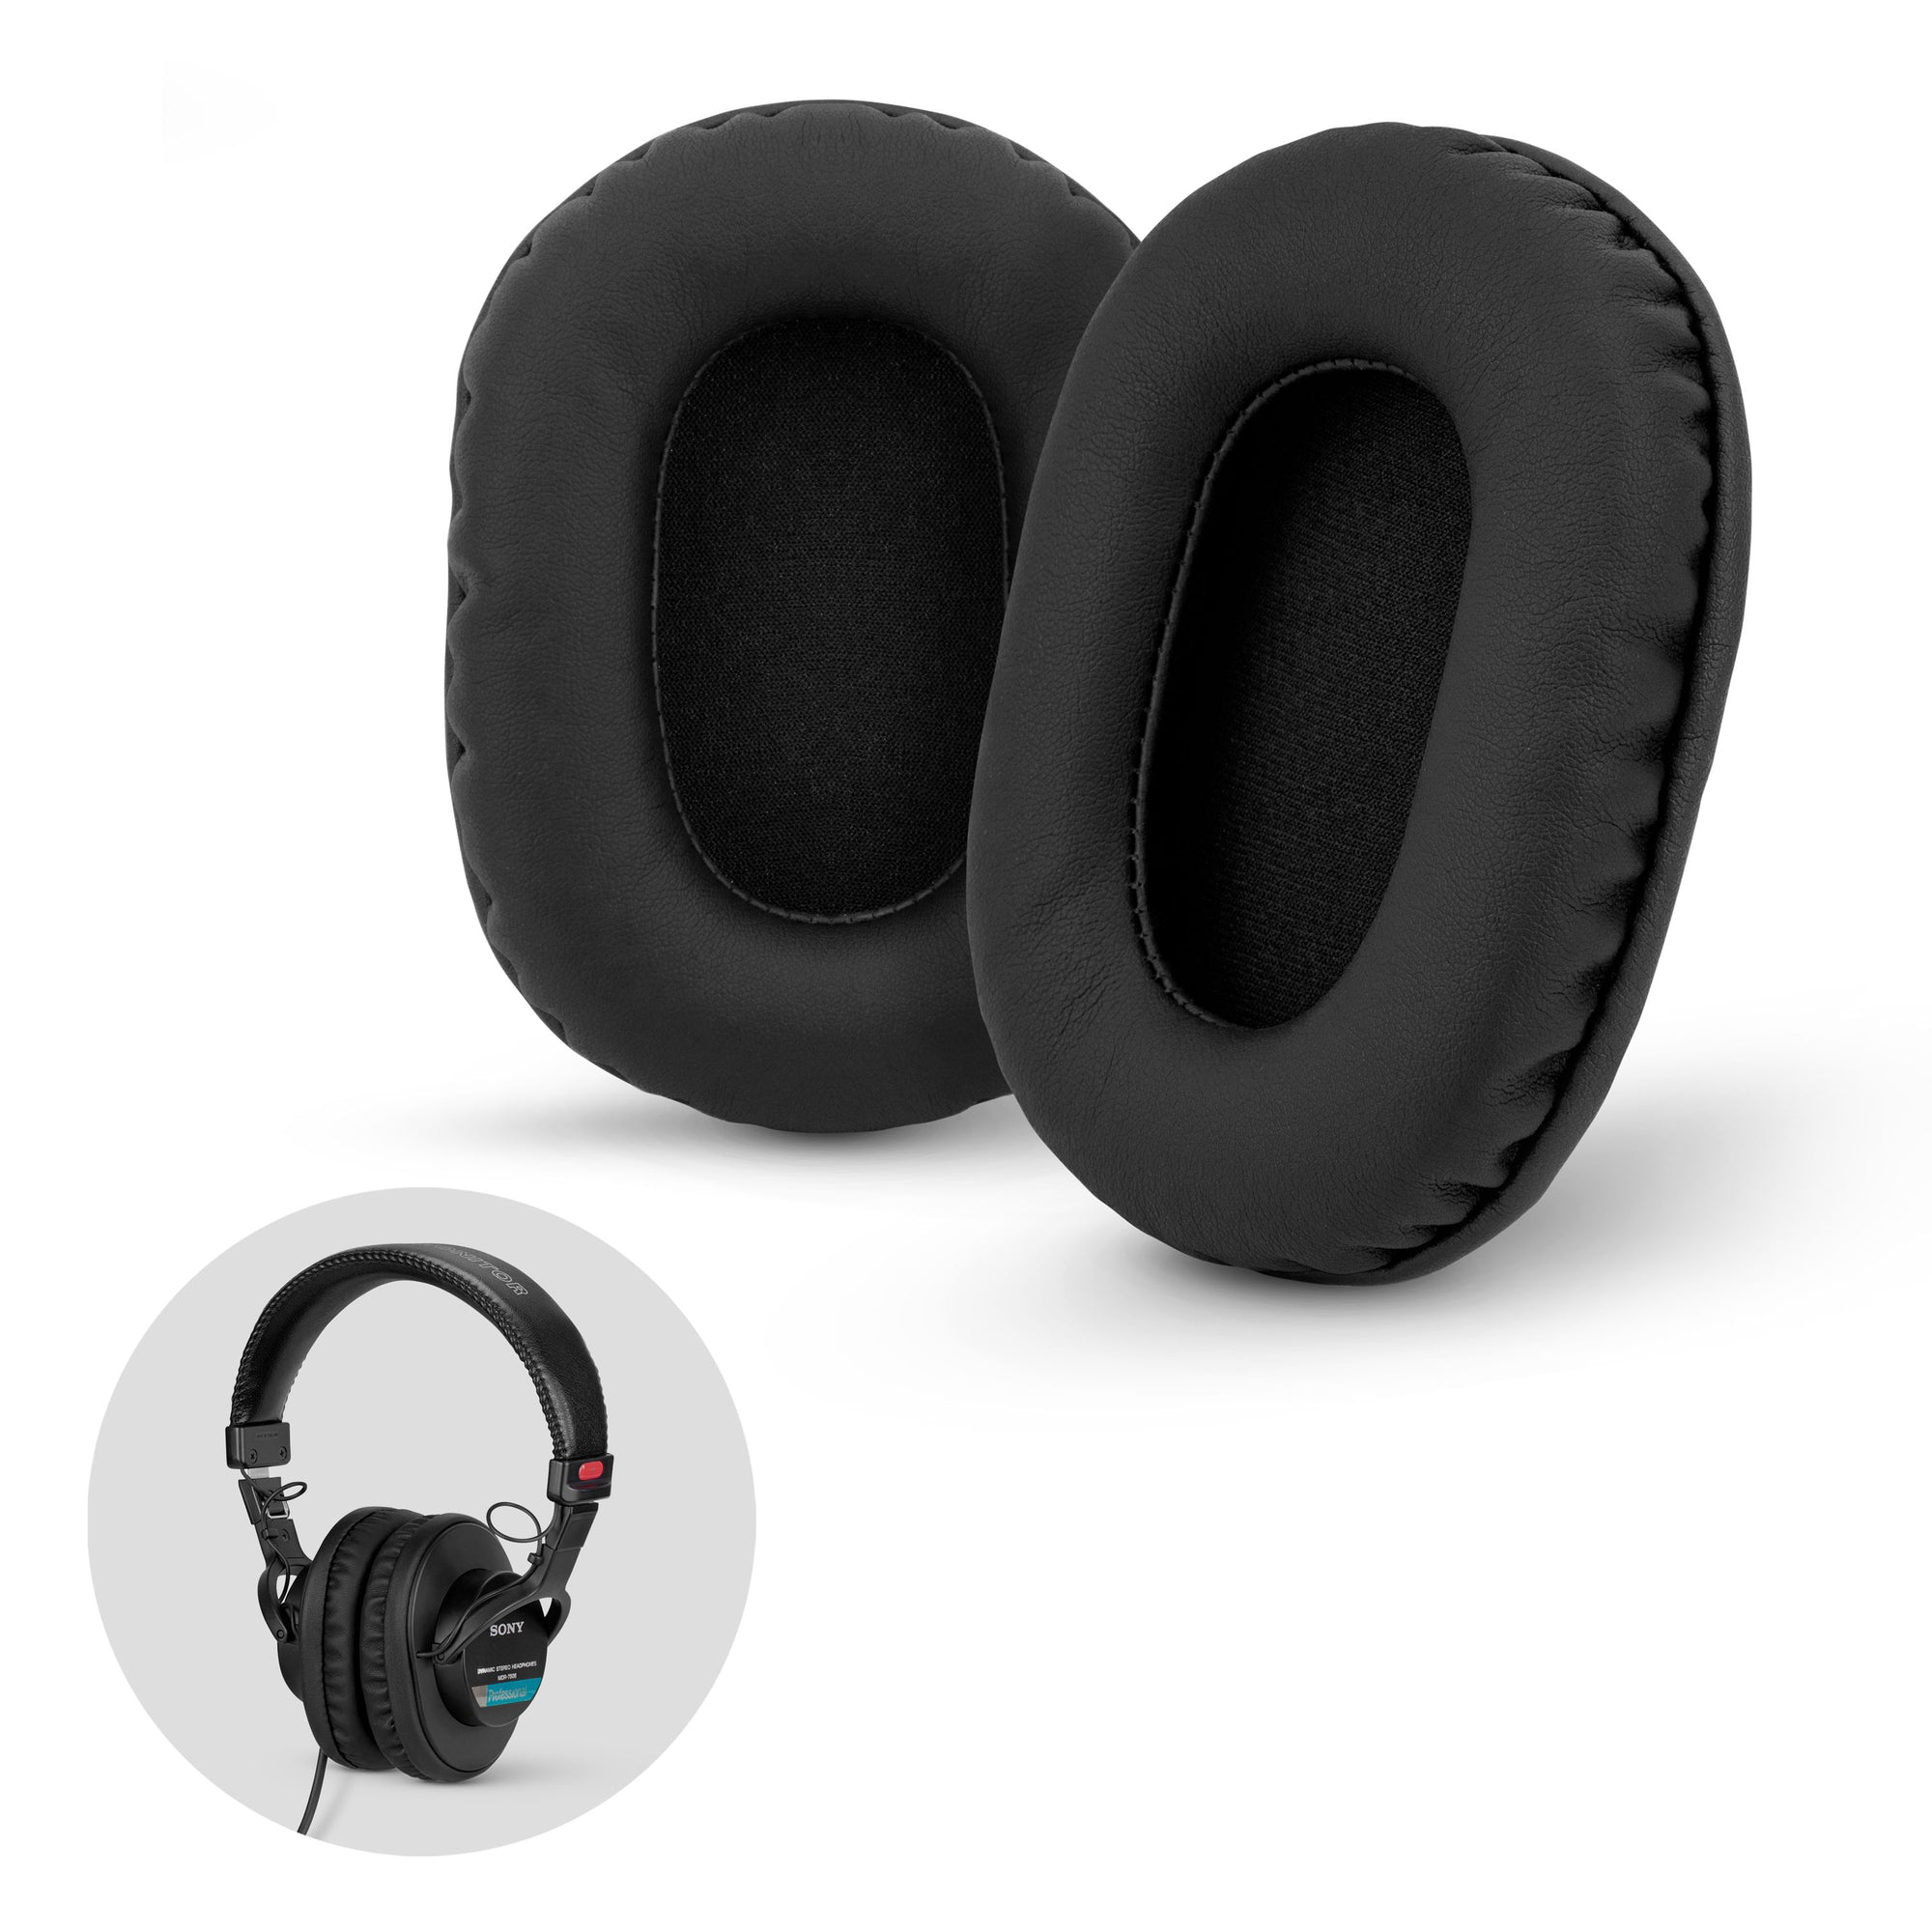 Faux Leather Earpads for SONY MDR-7506 / V6 / CD900ST